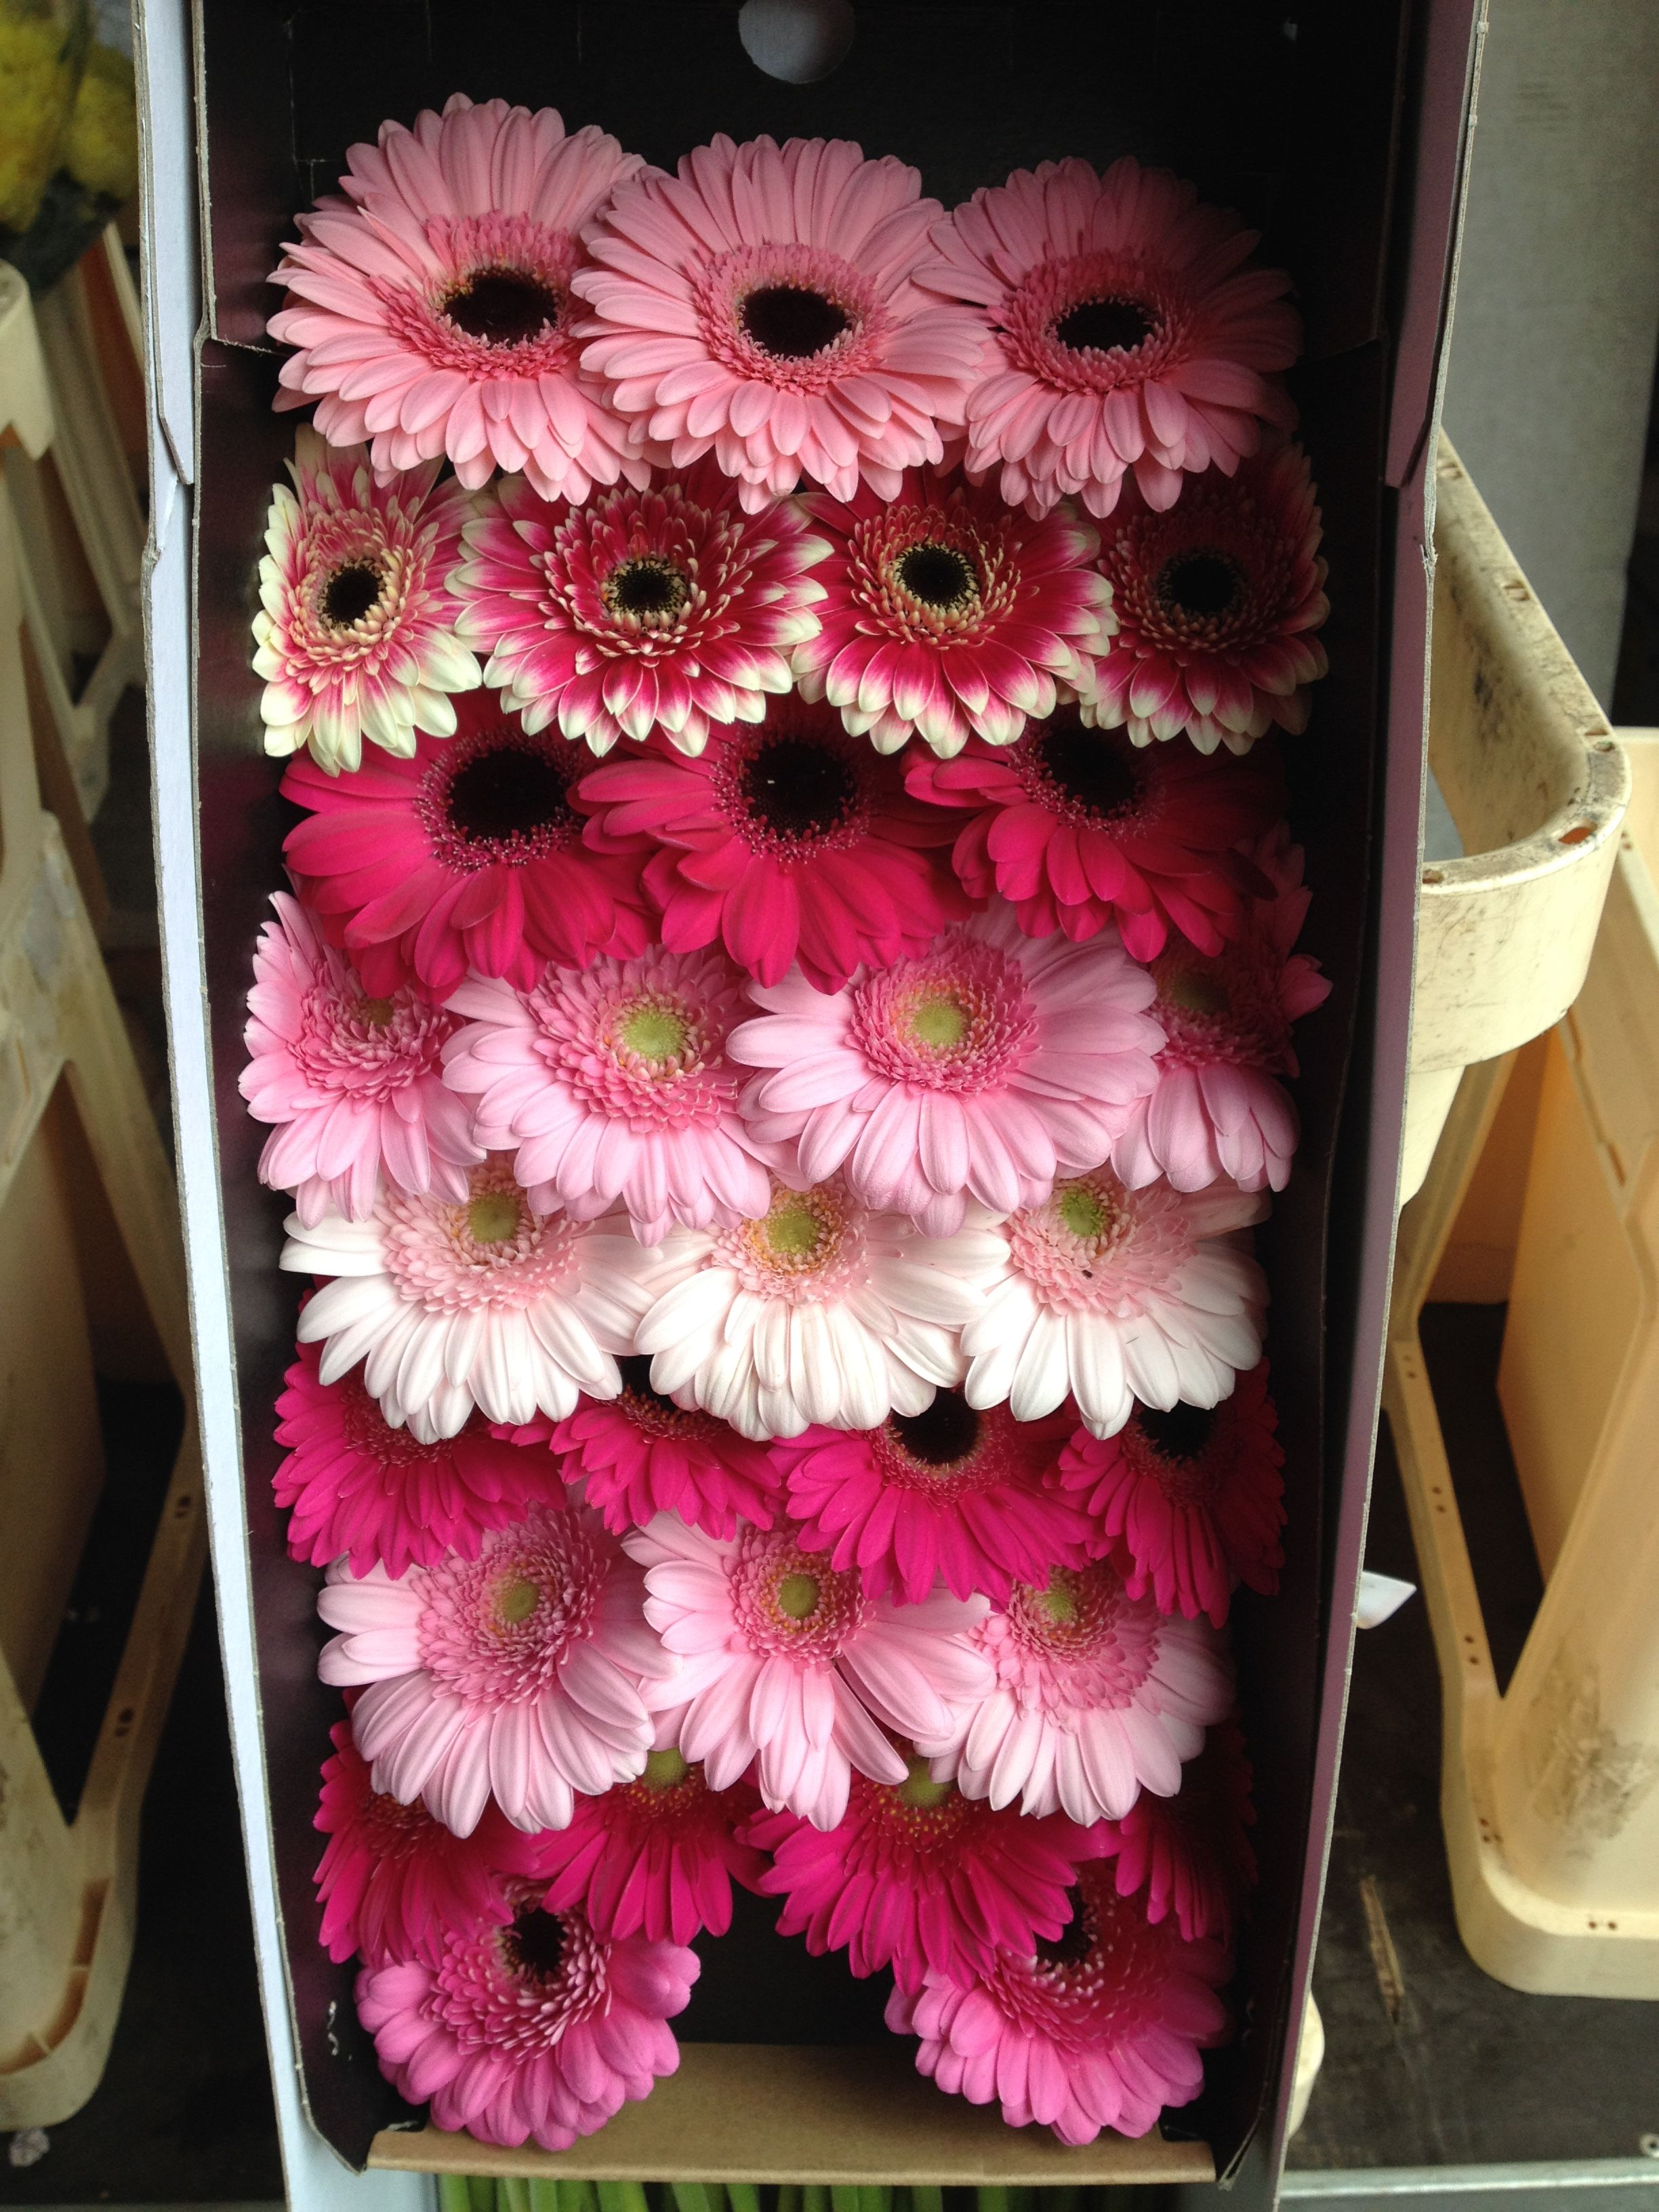 Wholesale Fresh Flowers for DIY weddings and events | Diy ...